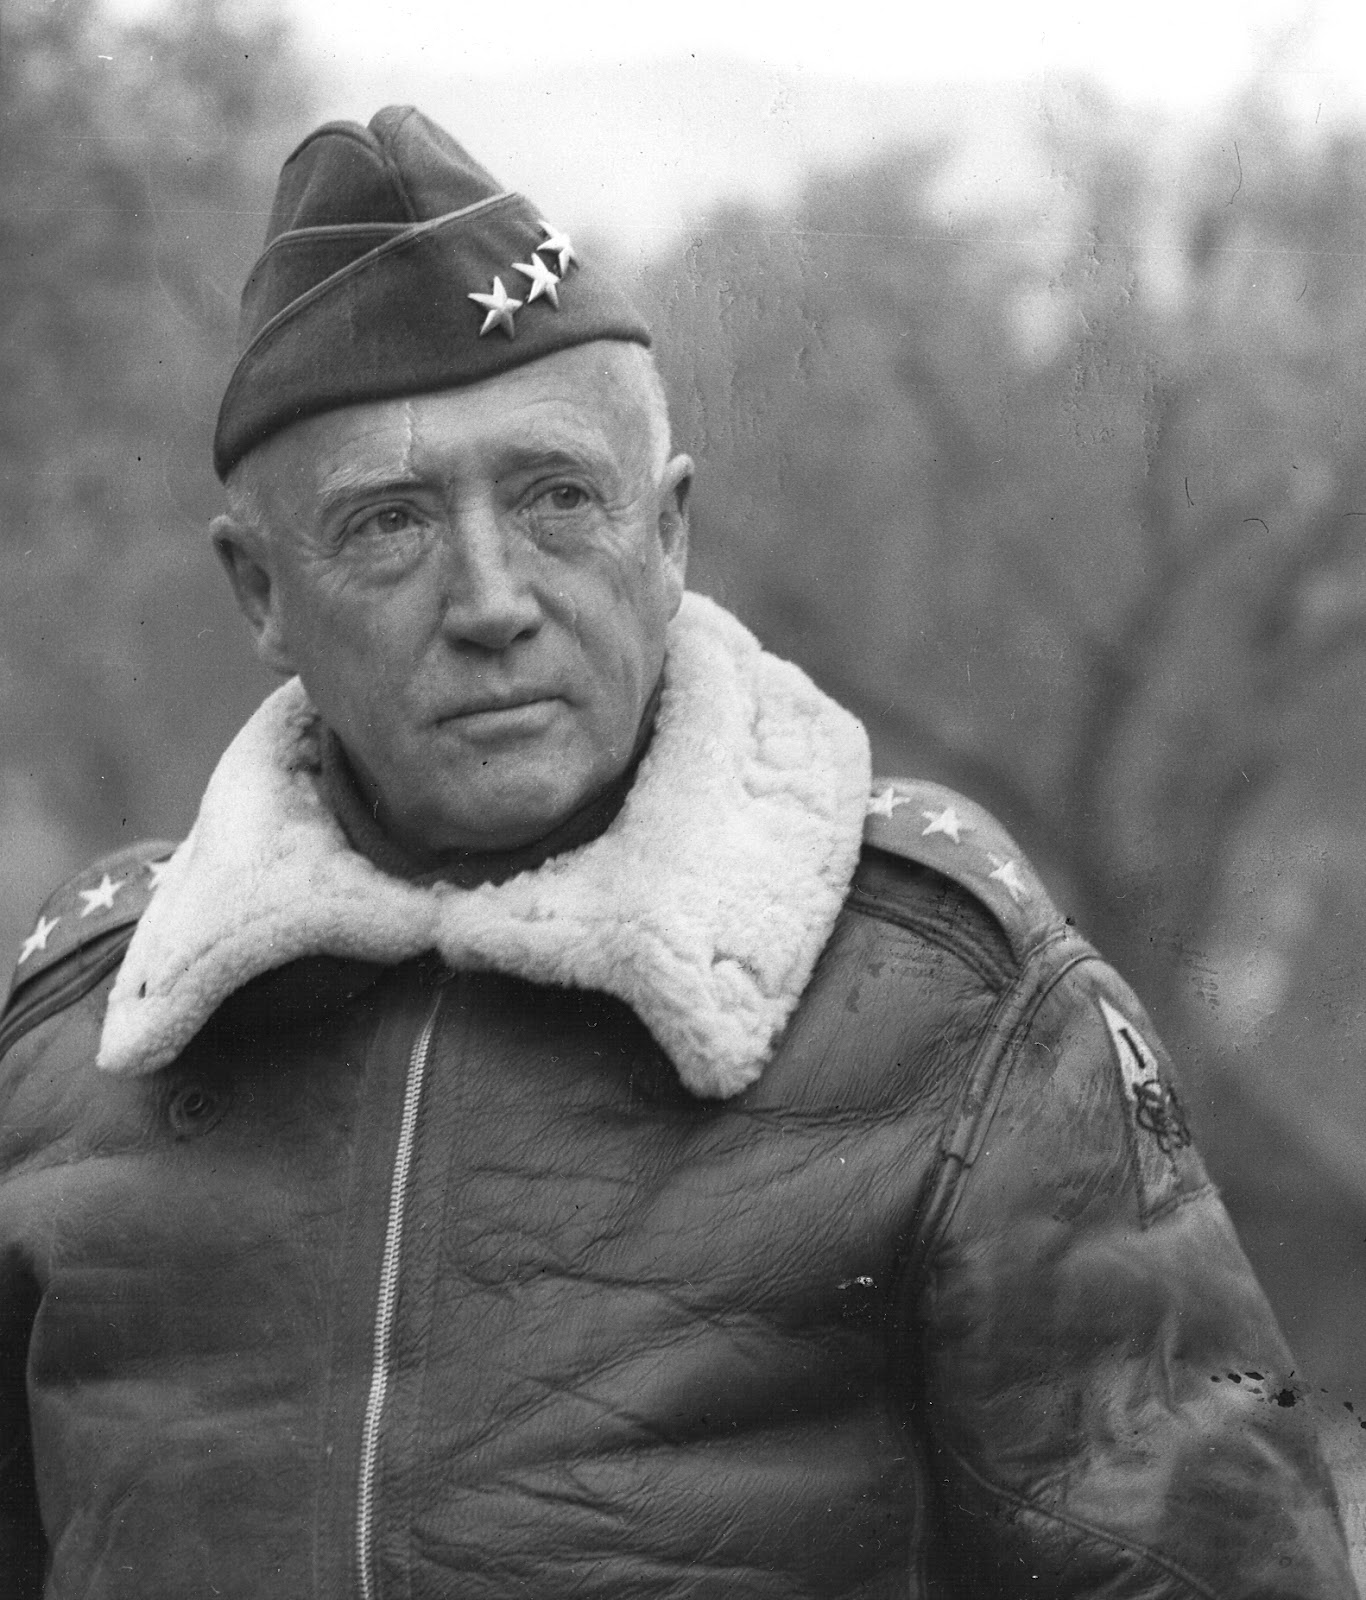 general patton 2016-11-19 1885 november 11 patton was born in san gabriel, los angeles county, california 1897–1903 patton attended stephen cutter clark's classical school for boys.